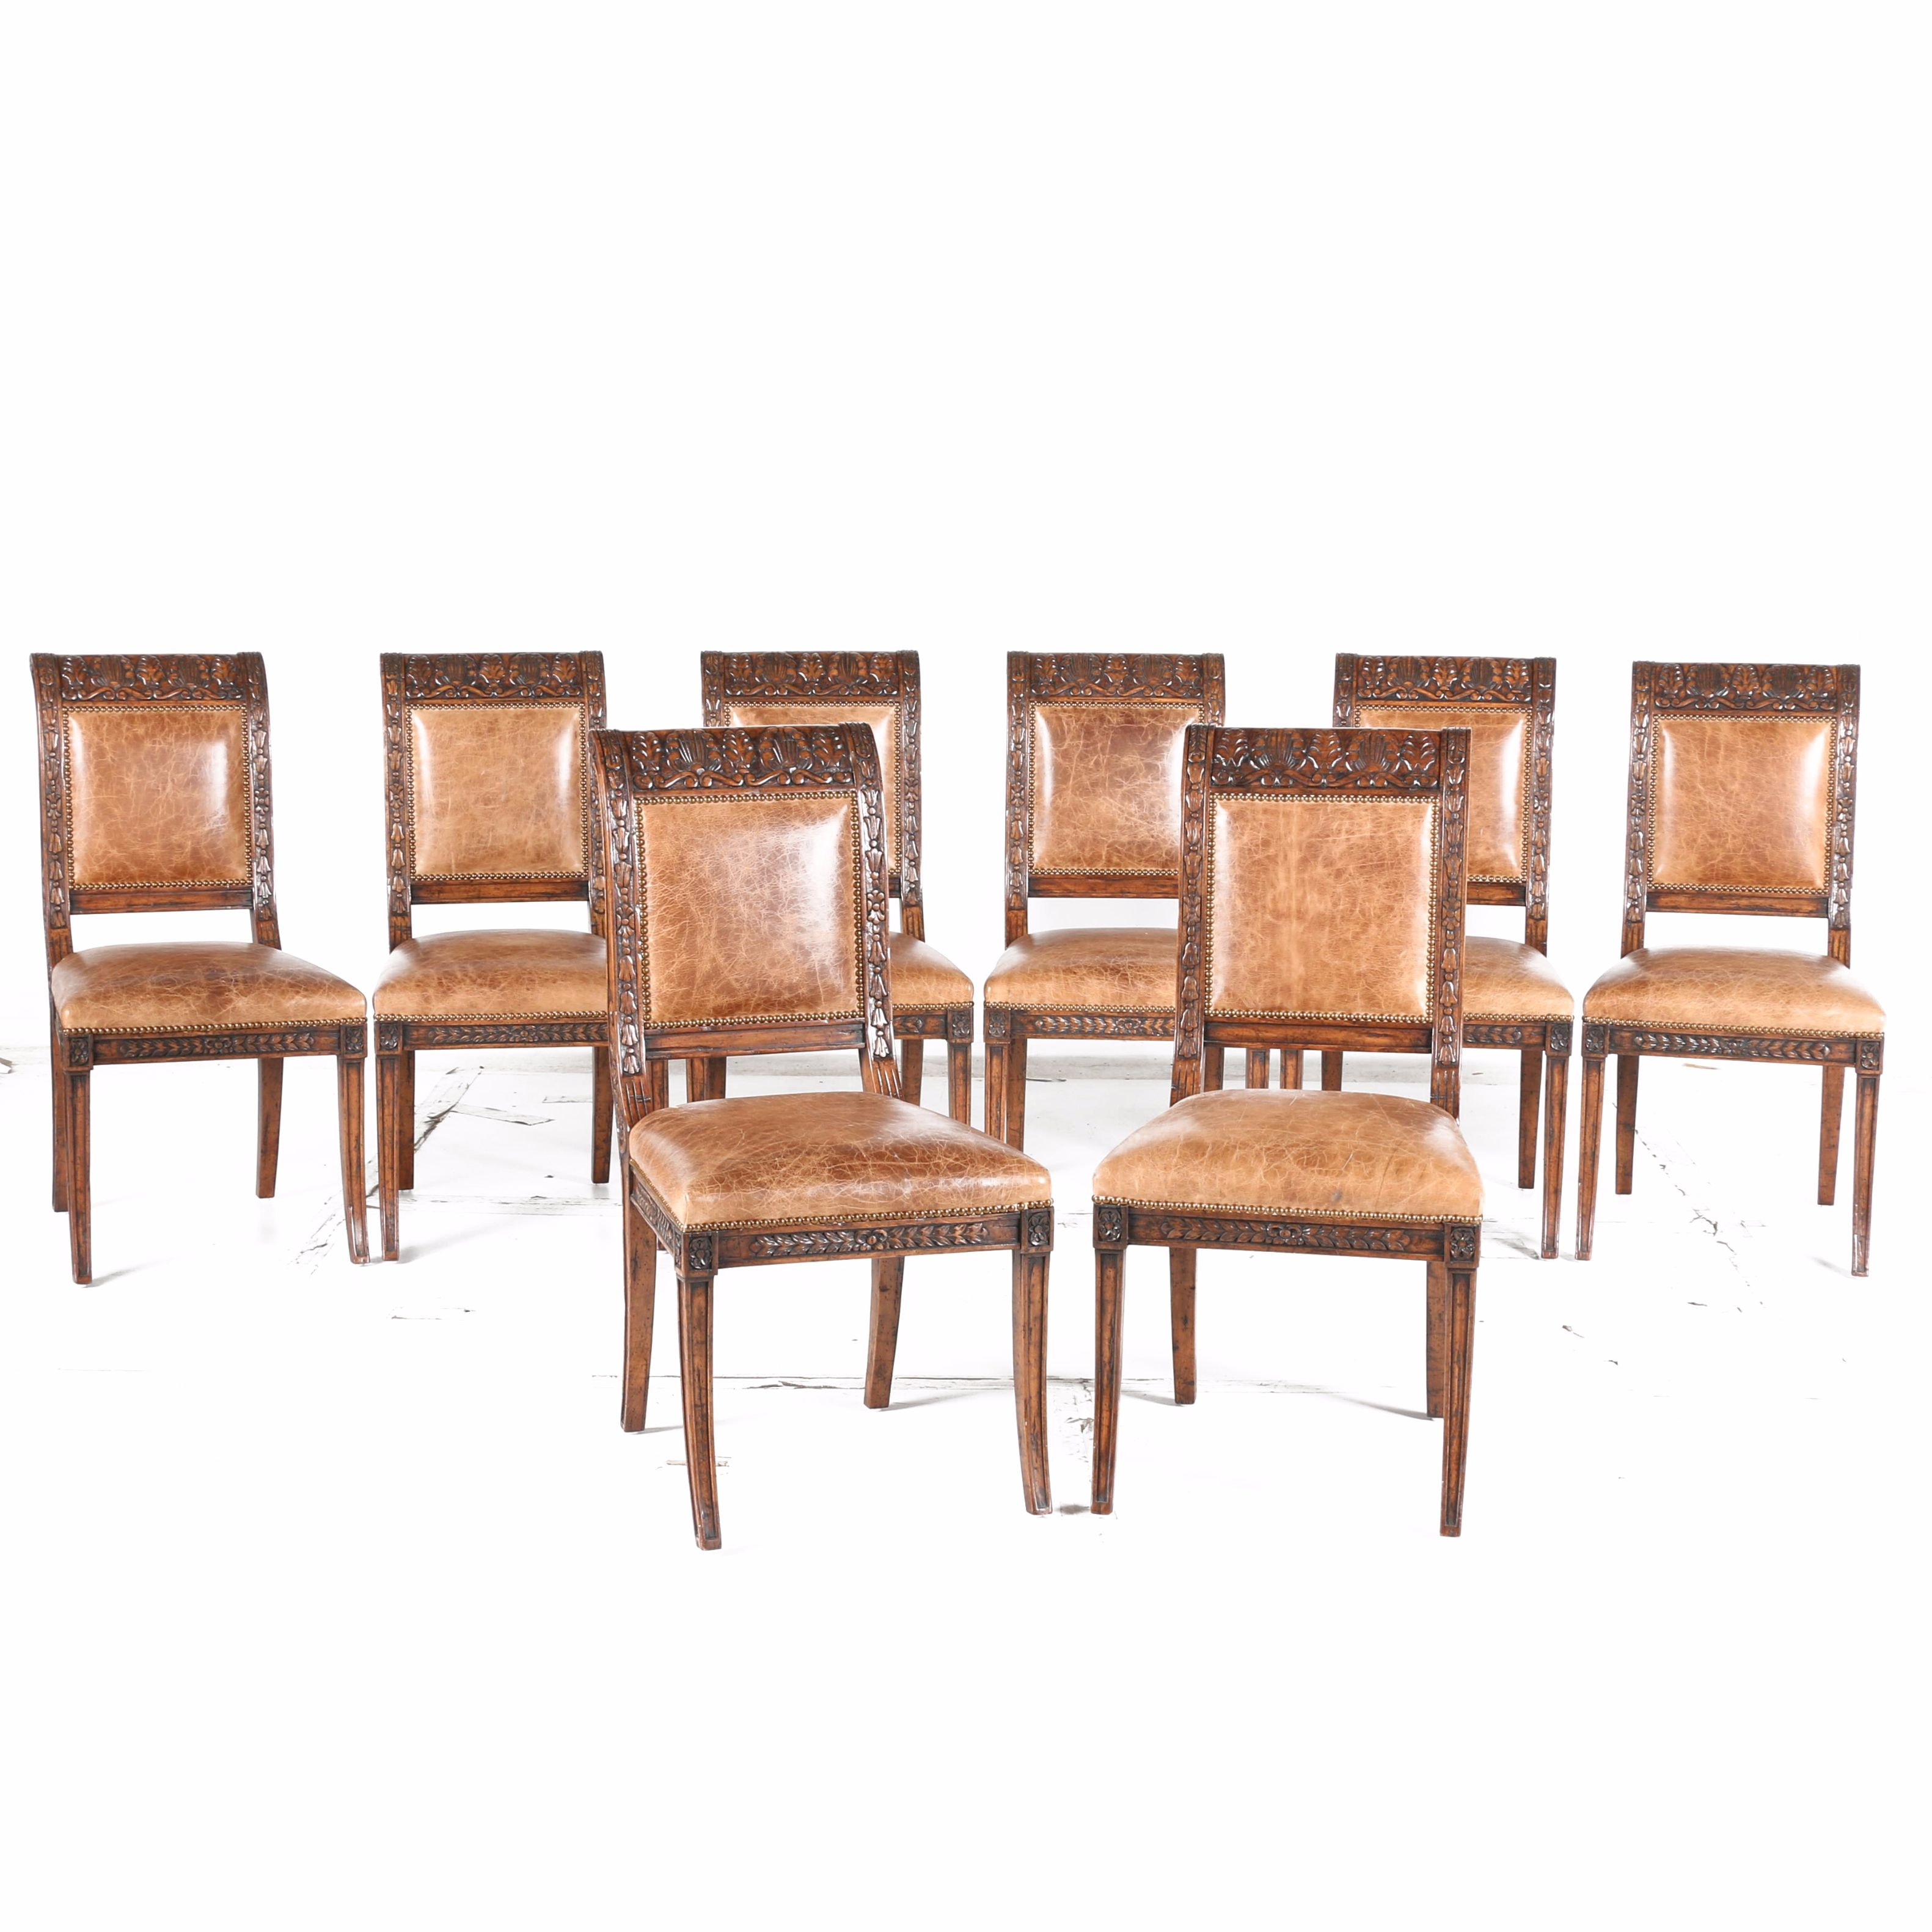 Vintage Neoclassical Inspired Dining Chairs